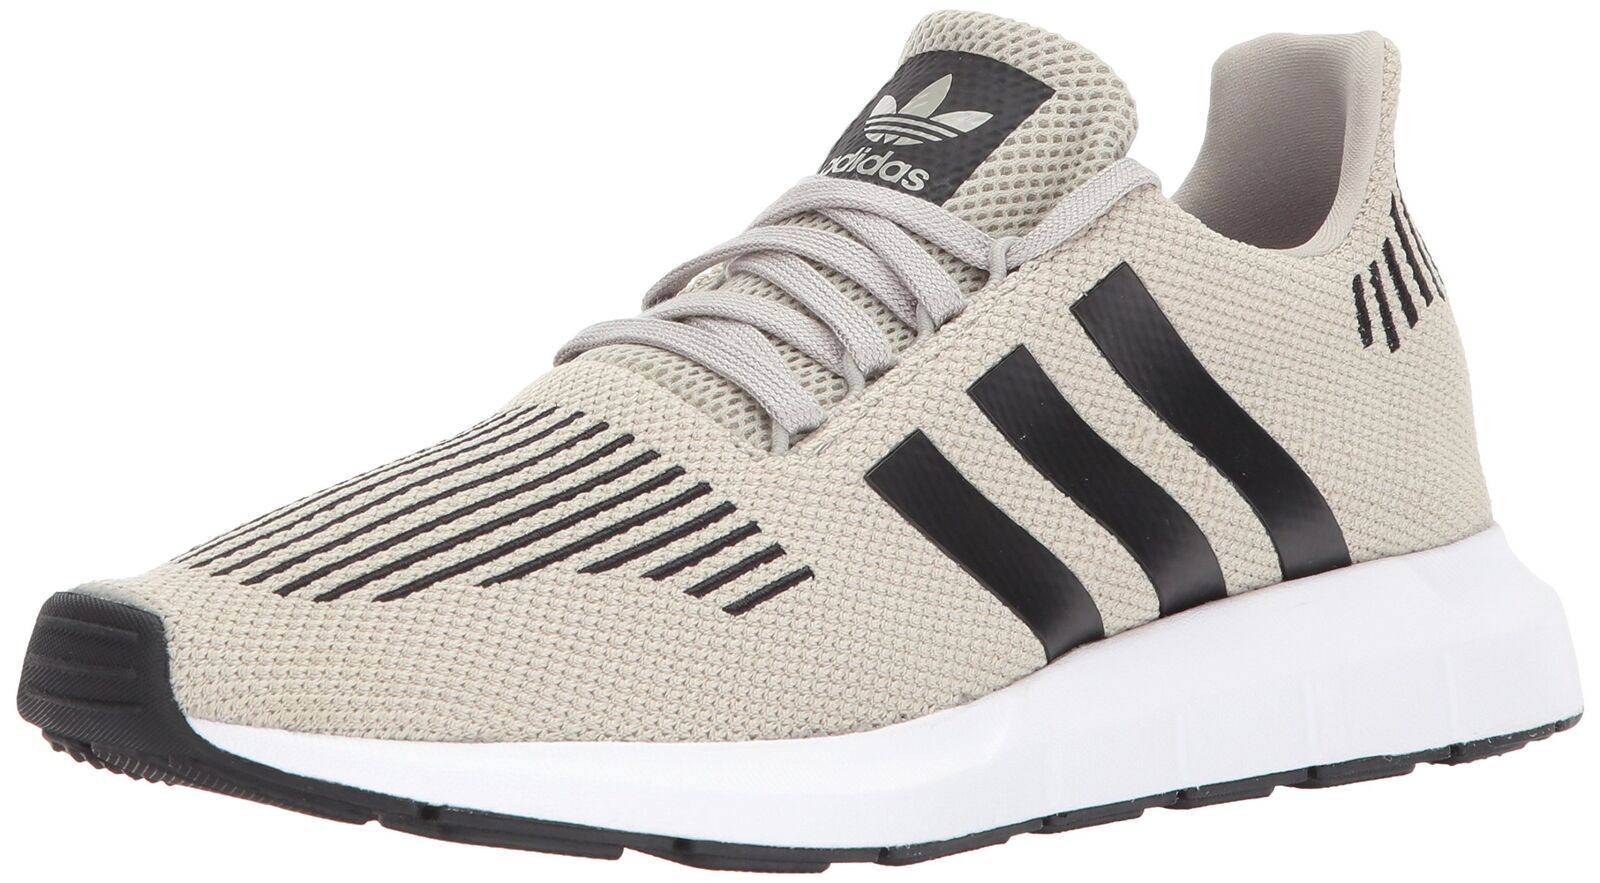 Adidas Men's Swift Running shoes Sesame Black White 10 D(M) US New